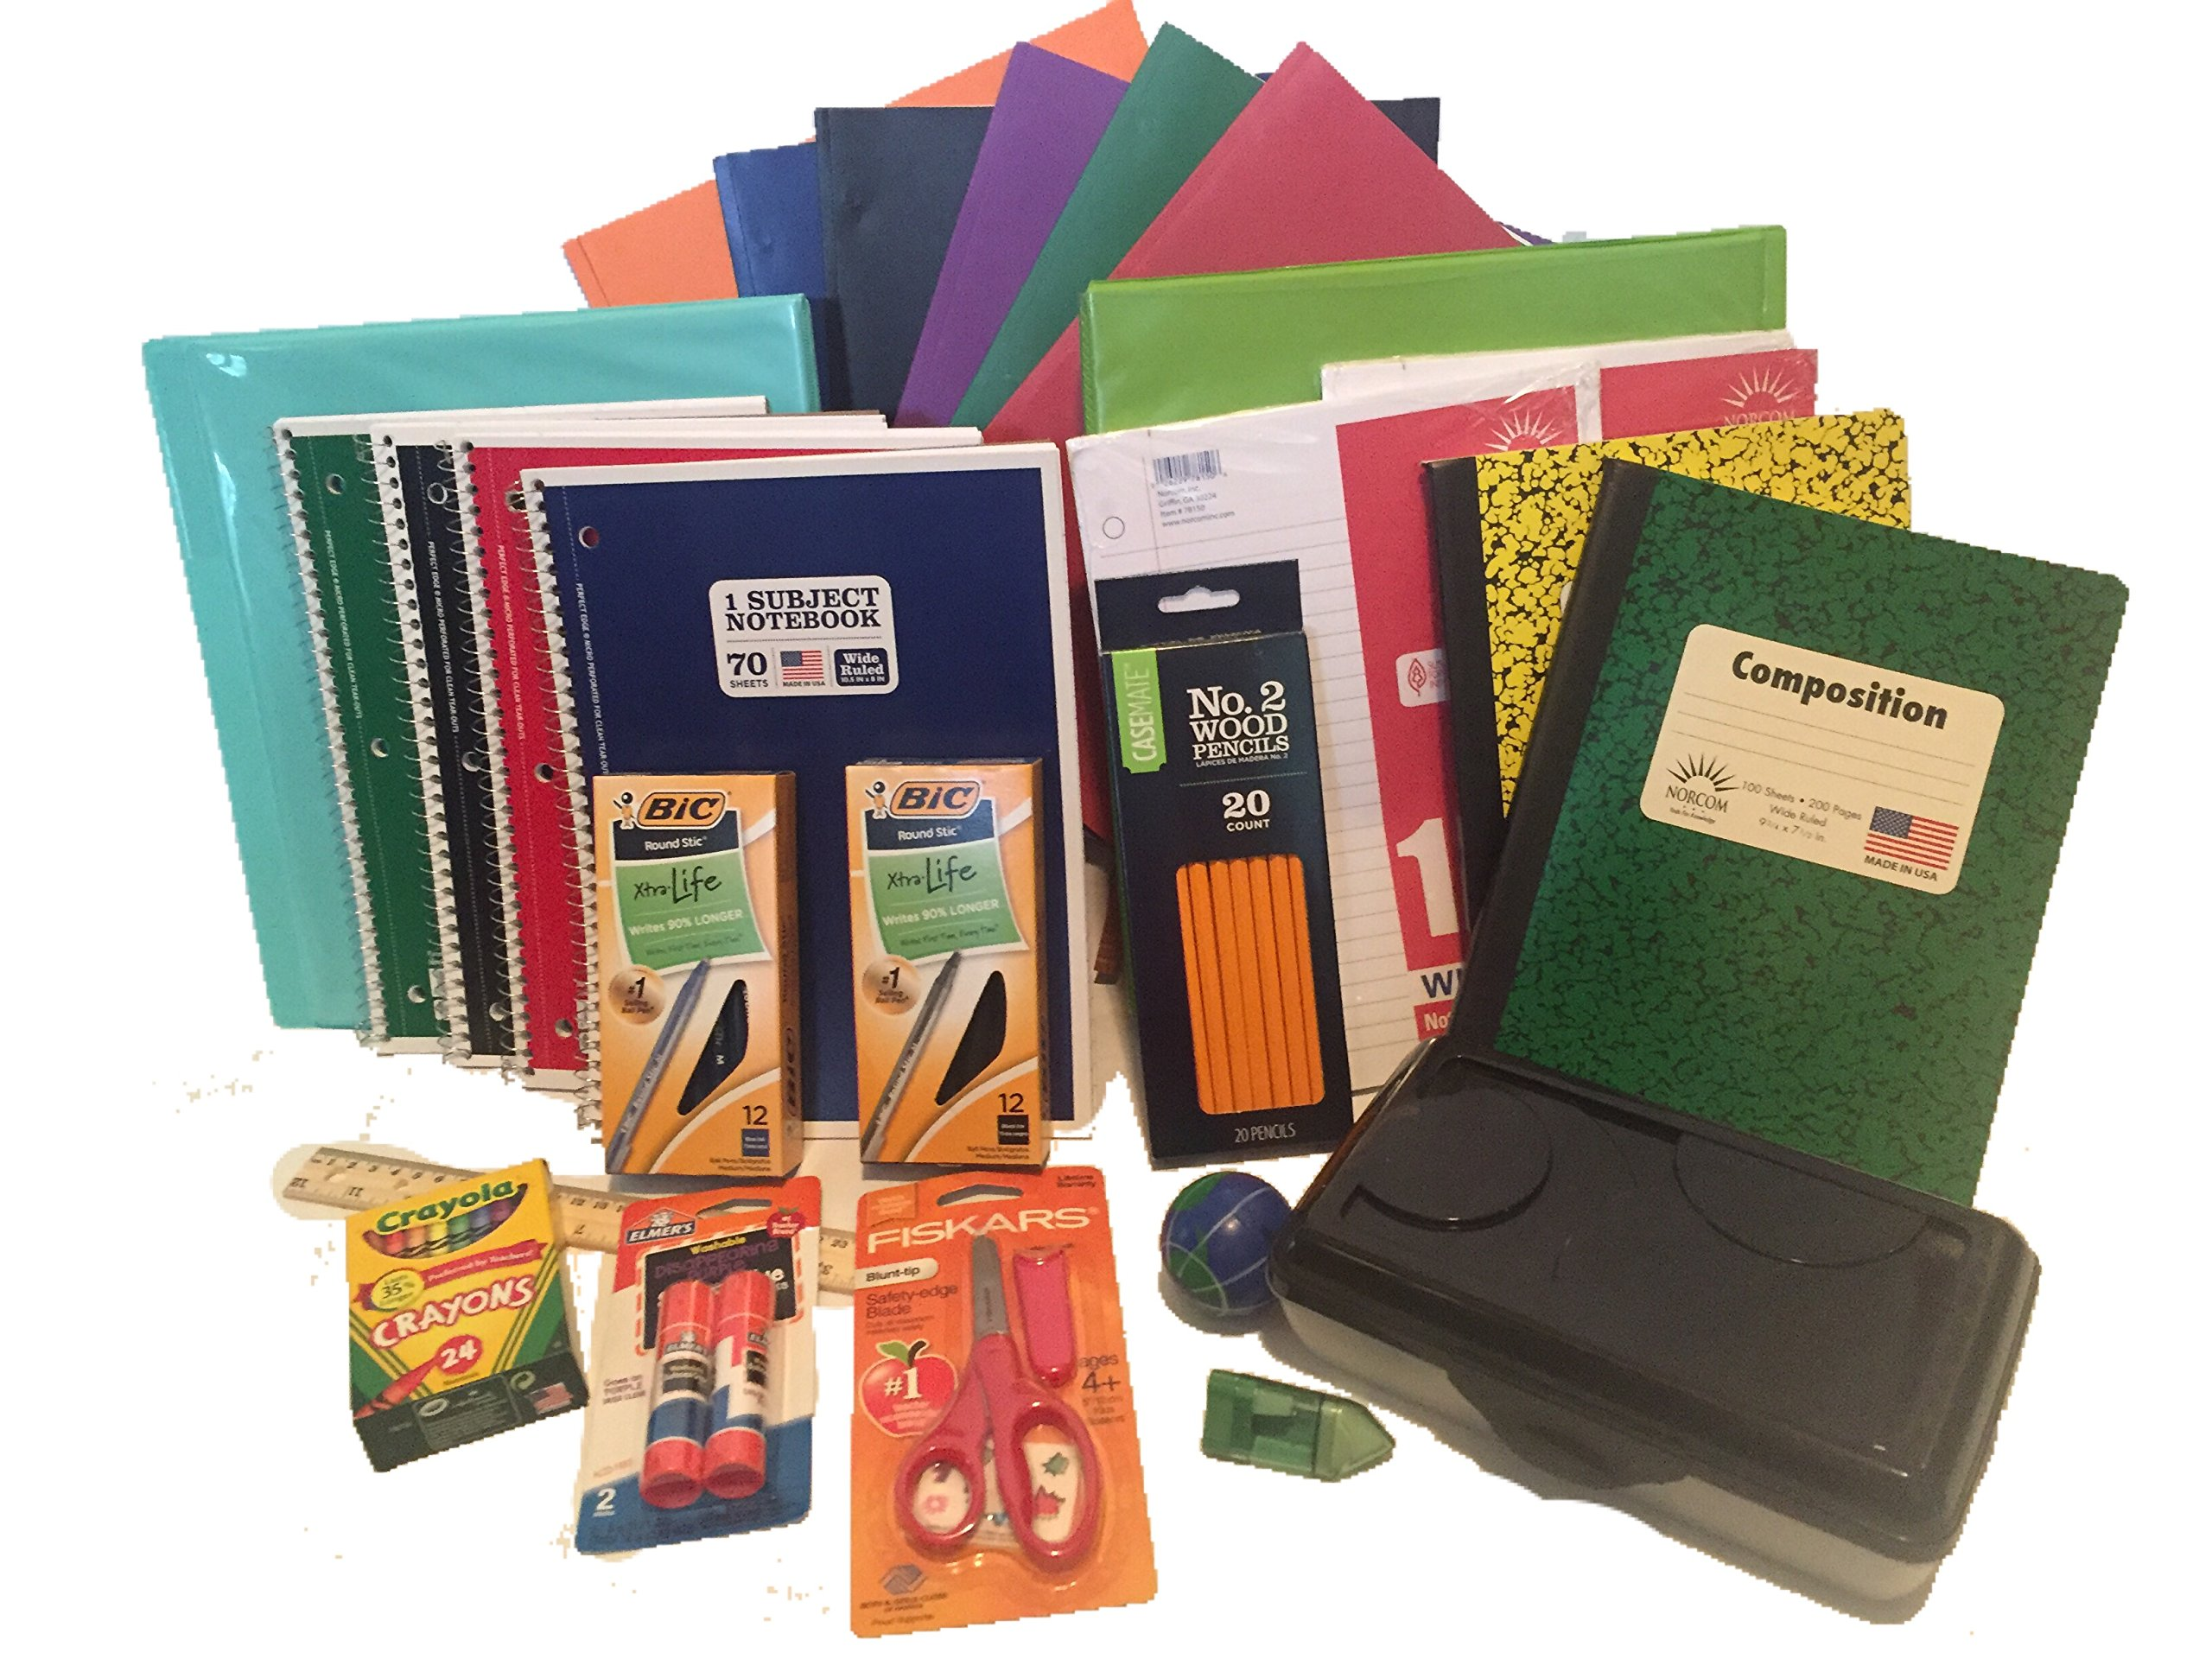 Elementary School Supply Pack - 25 Essential Items for Primary, Elementary or Middle School. Pencils, Paper, Binders, Notebooks, Folders, Crayola Crayons, Glue Sticks and More! 25 piece bundle